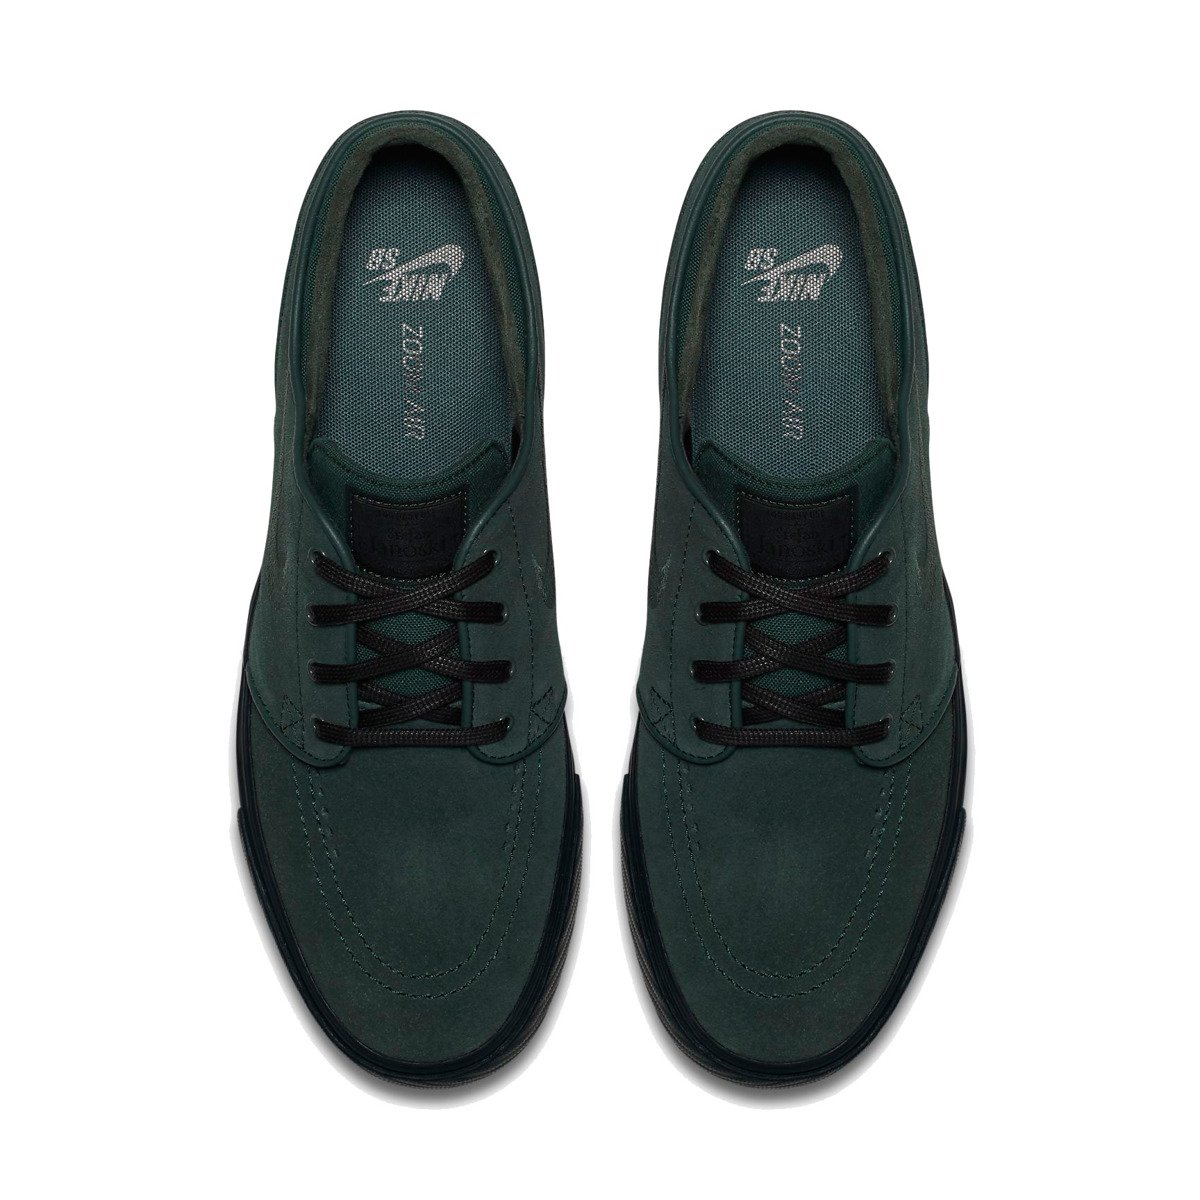 lento efecto picnic  nike sb zoom stefan janoski lmidnight green/midnight green-black BLACK |  Shoes \ Nike SB Shoes \ nike janoski Brands \ Nike SB SALE \ Sale - 40% \  Shoes Buty \ Nike